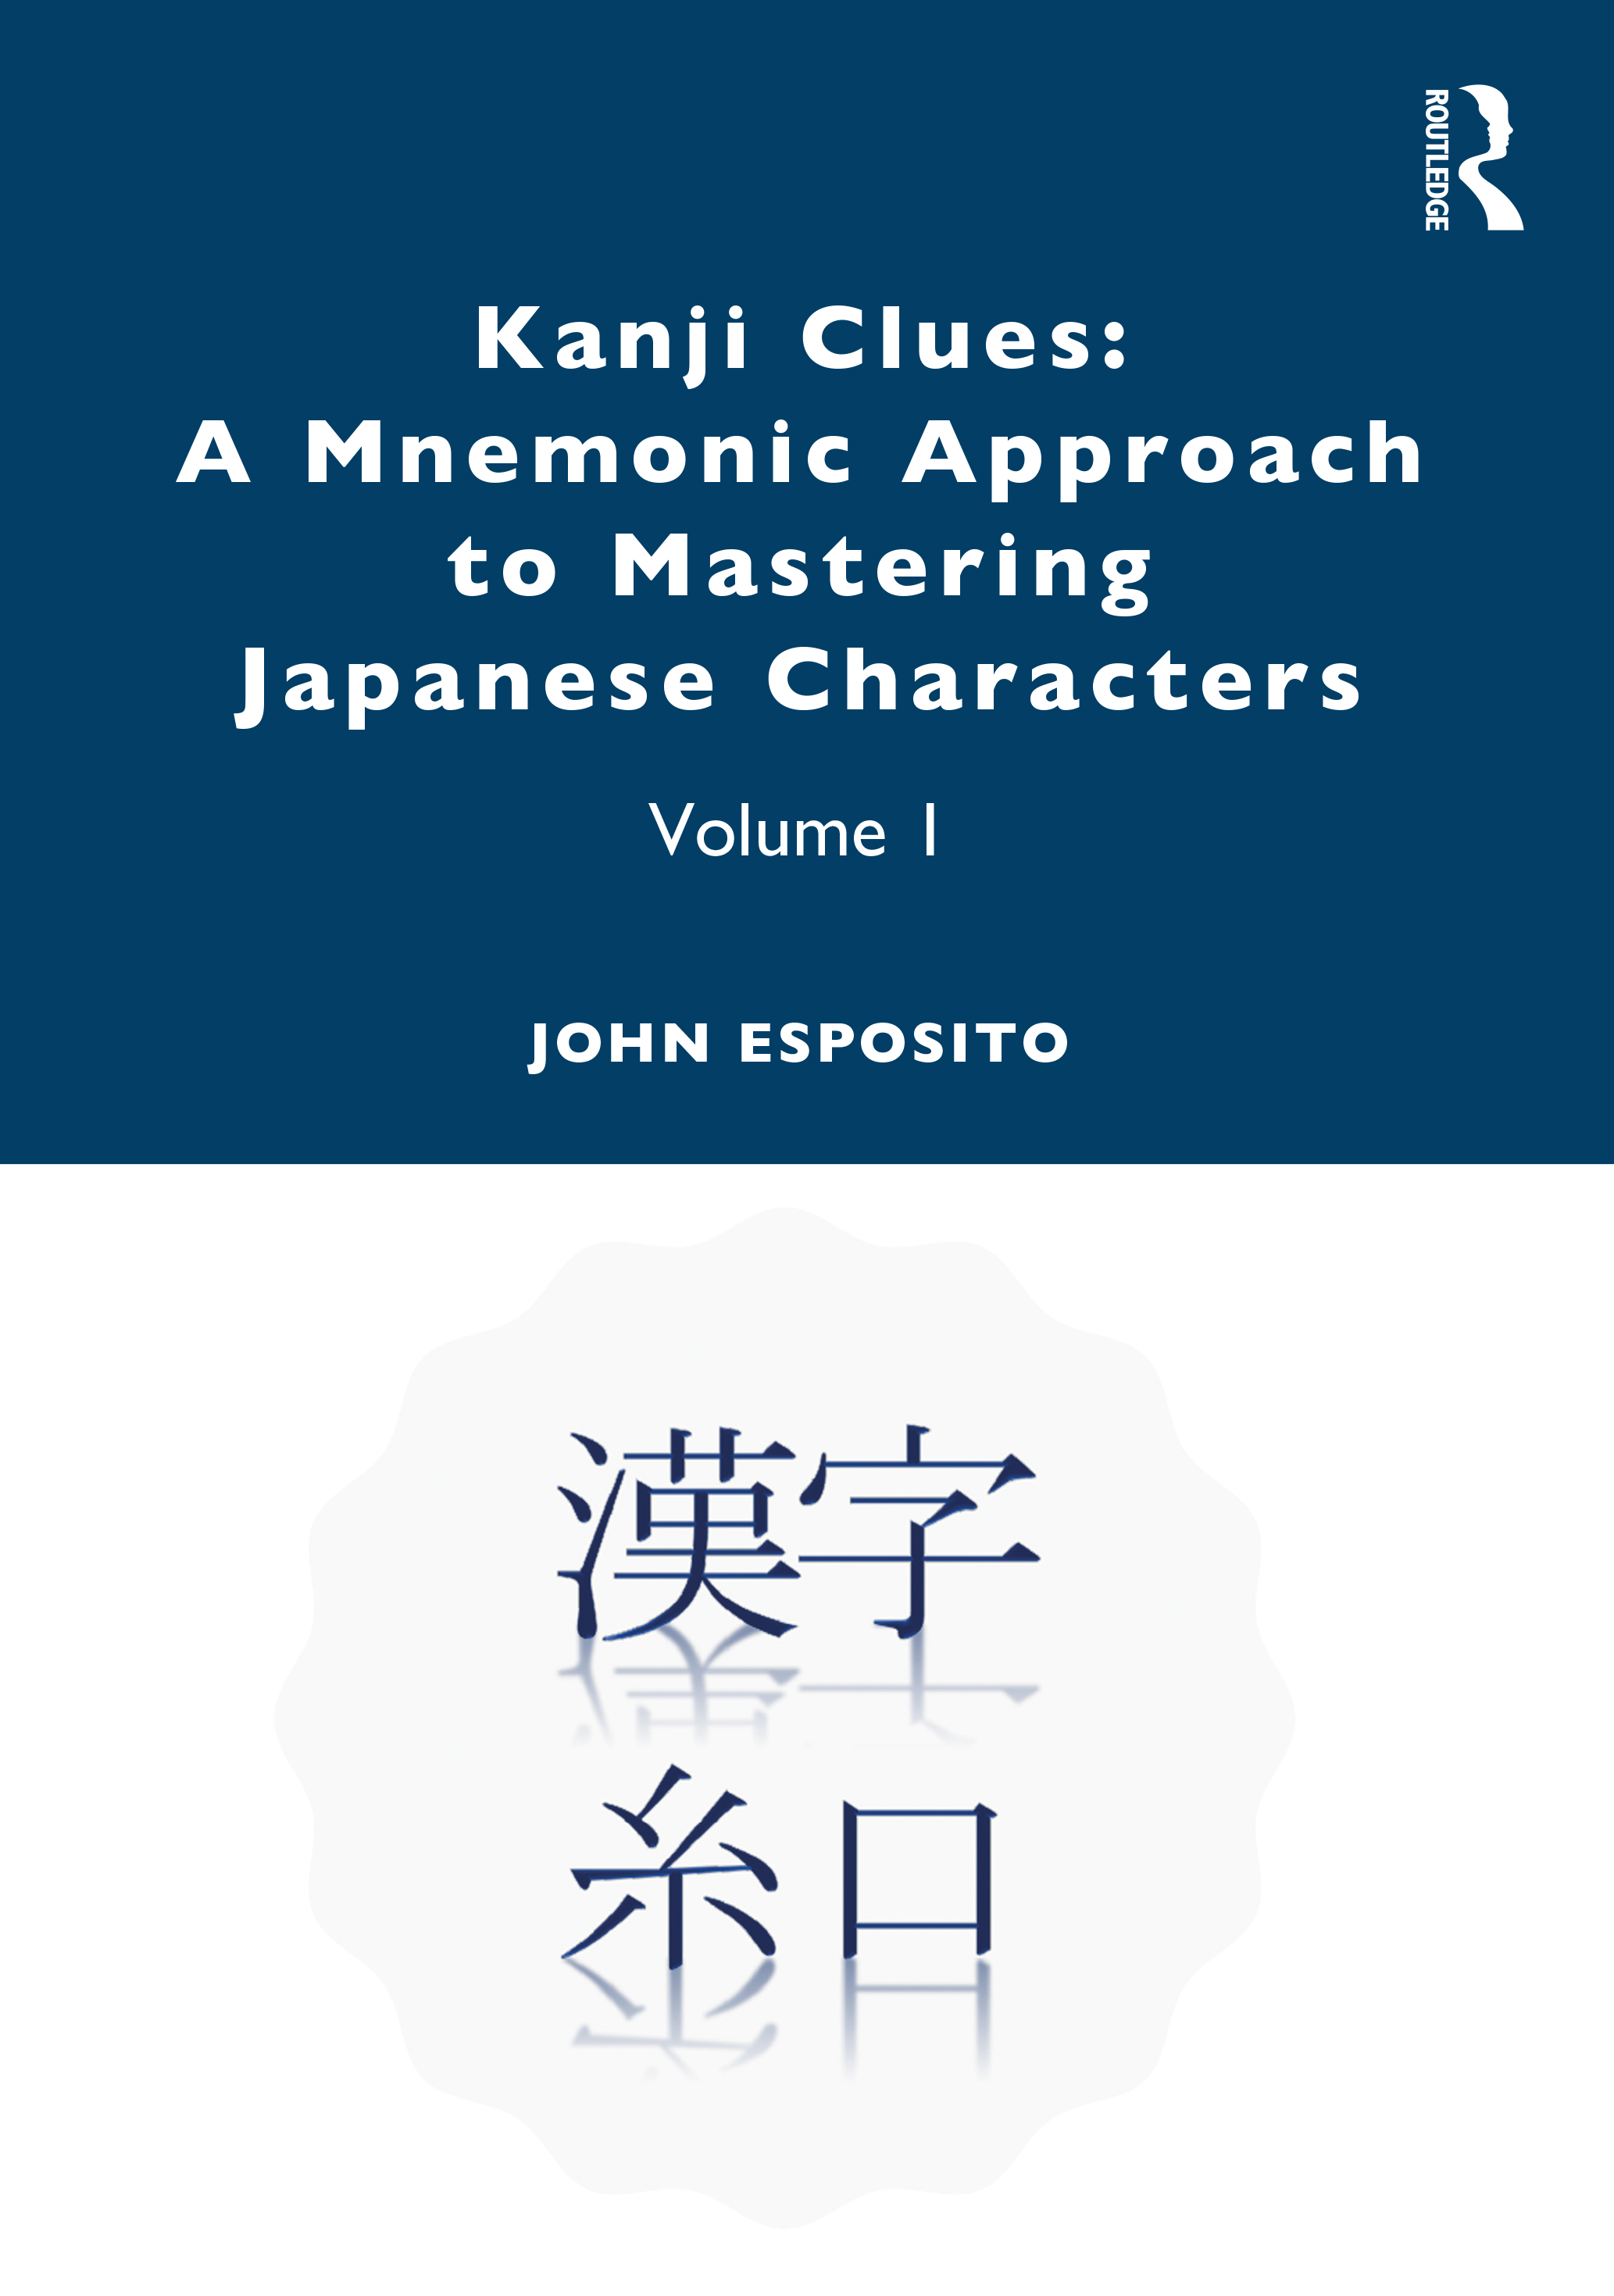 Kanji Clues: A Mnemonic Approach to Mastering Japanese Characters: Volume 1 book cover